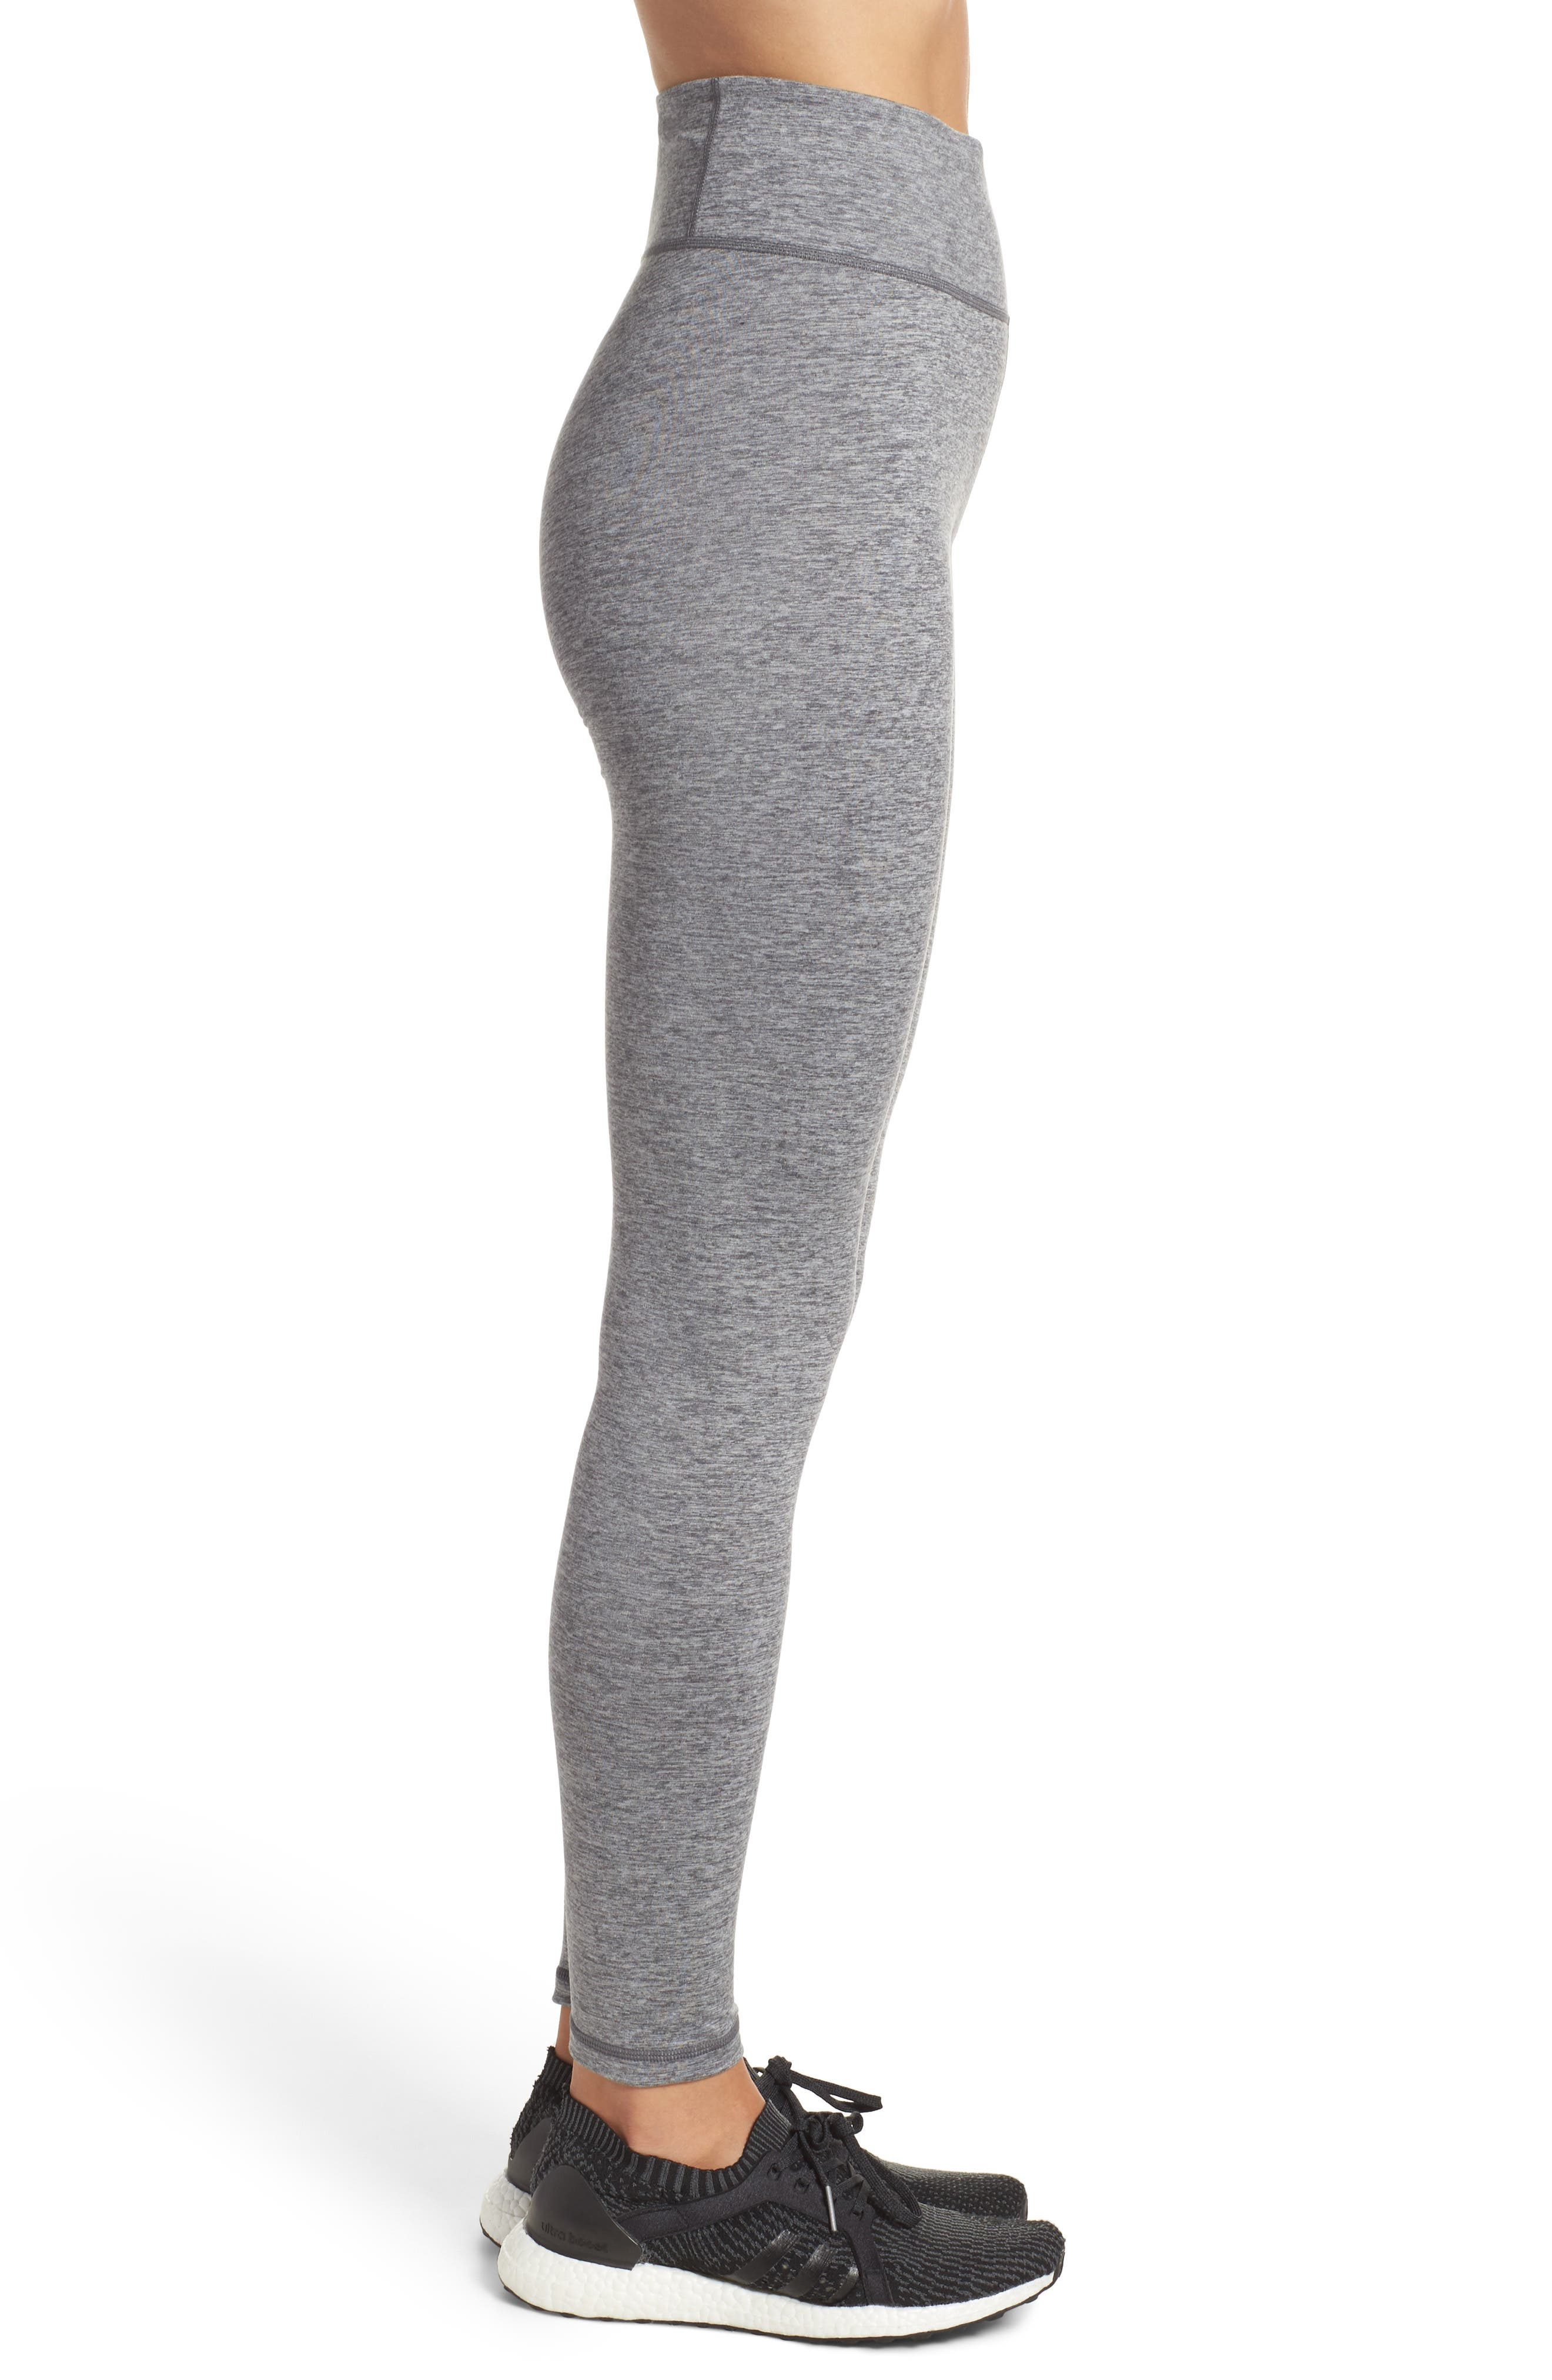 Performer Climalite<sup>®</sup> High Waist Leggings,                             Alternate thumbnail 3, color,                             026